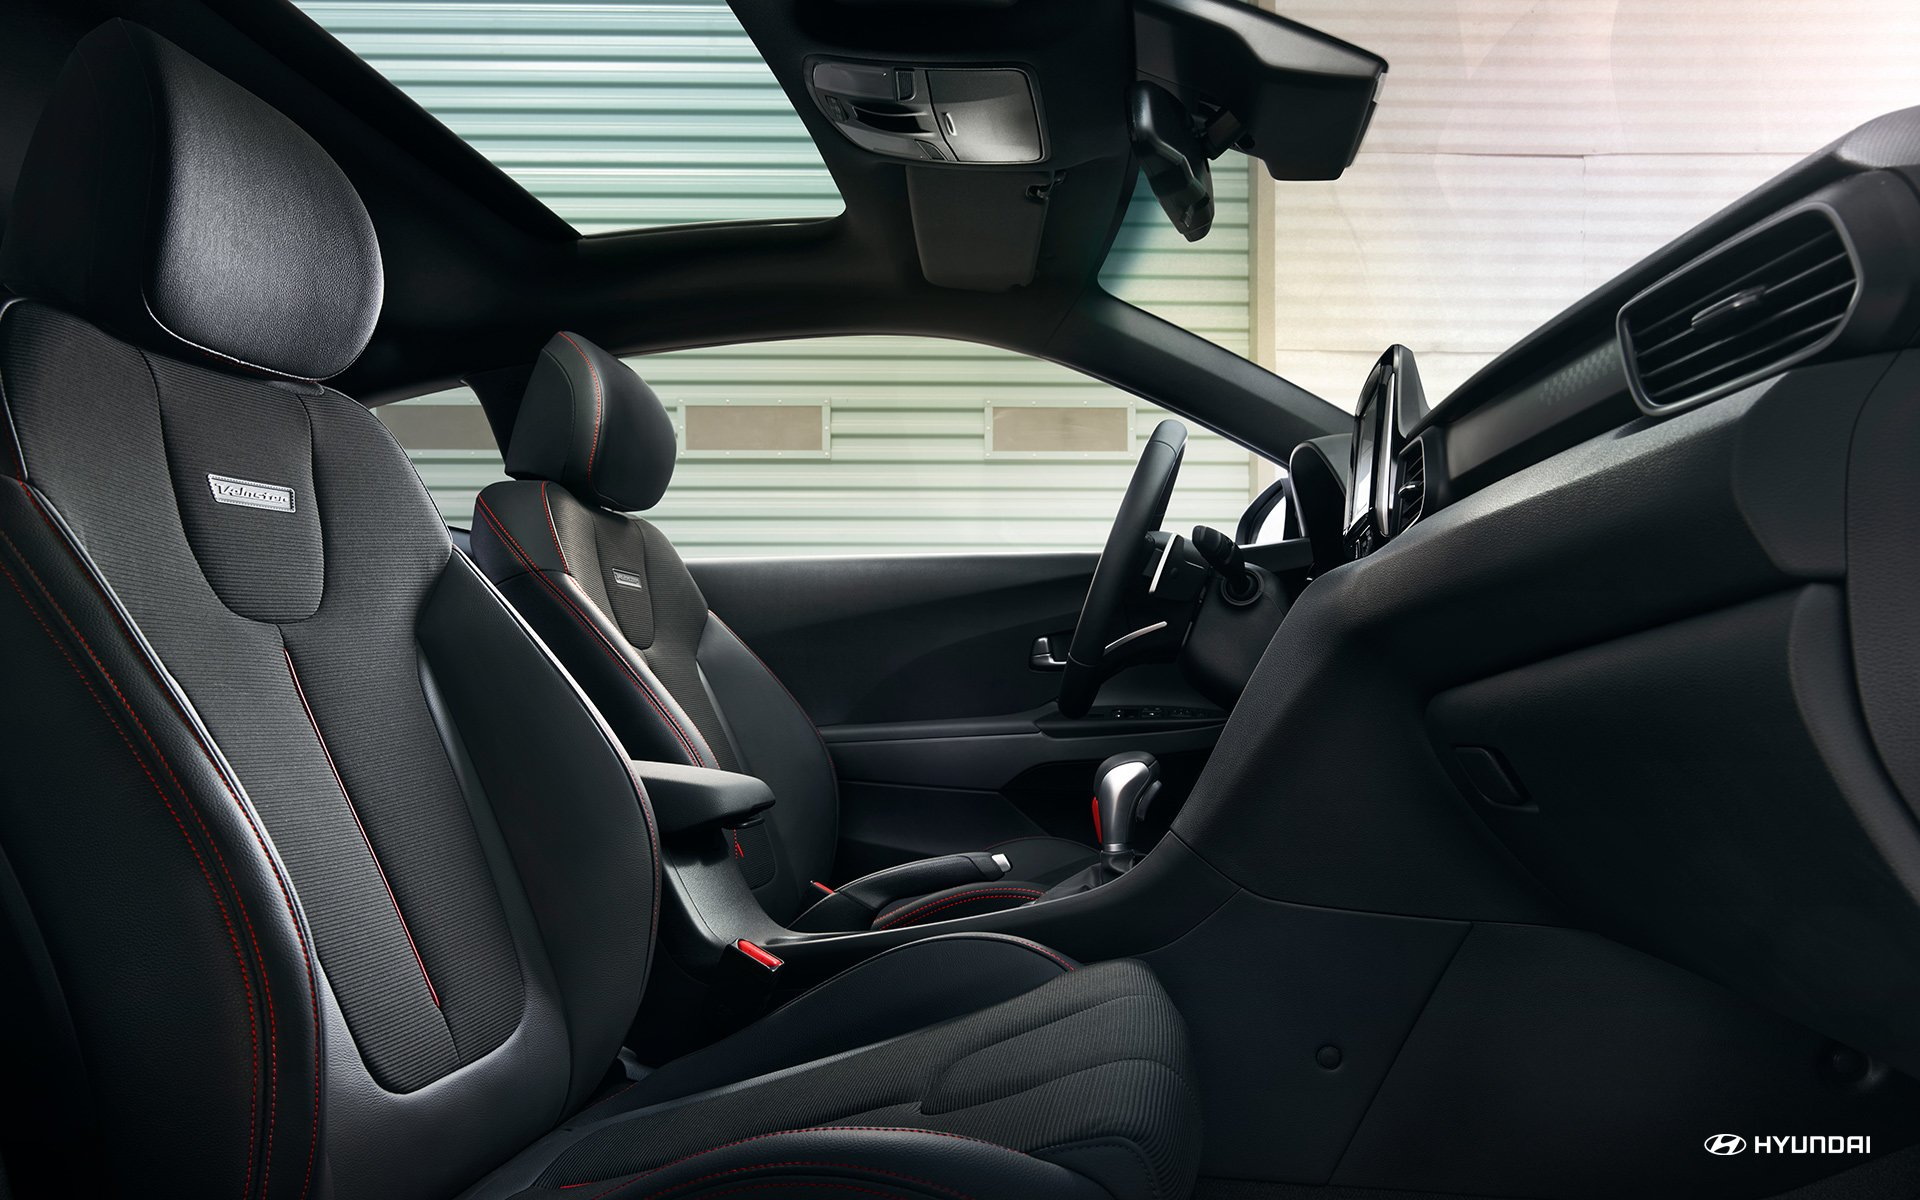 New Hyundai Veloster Interior Features